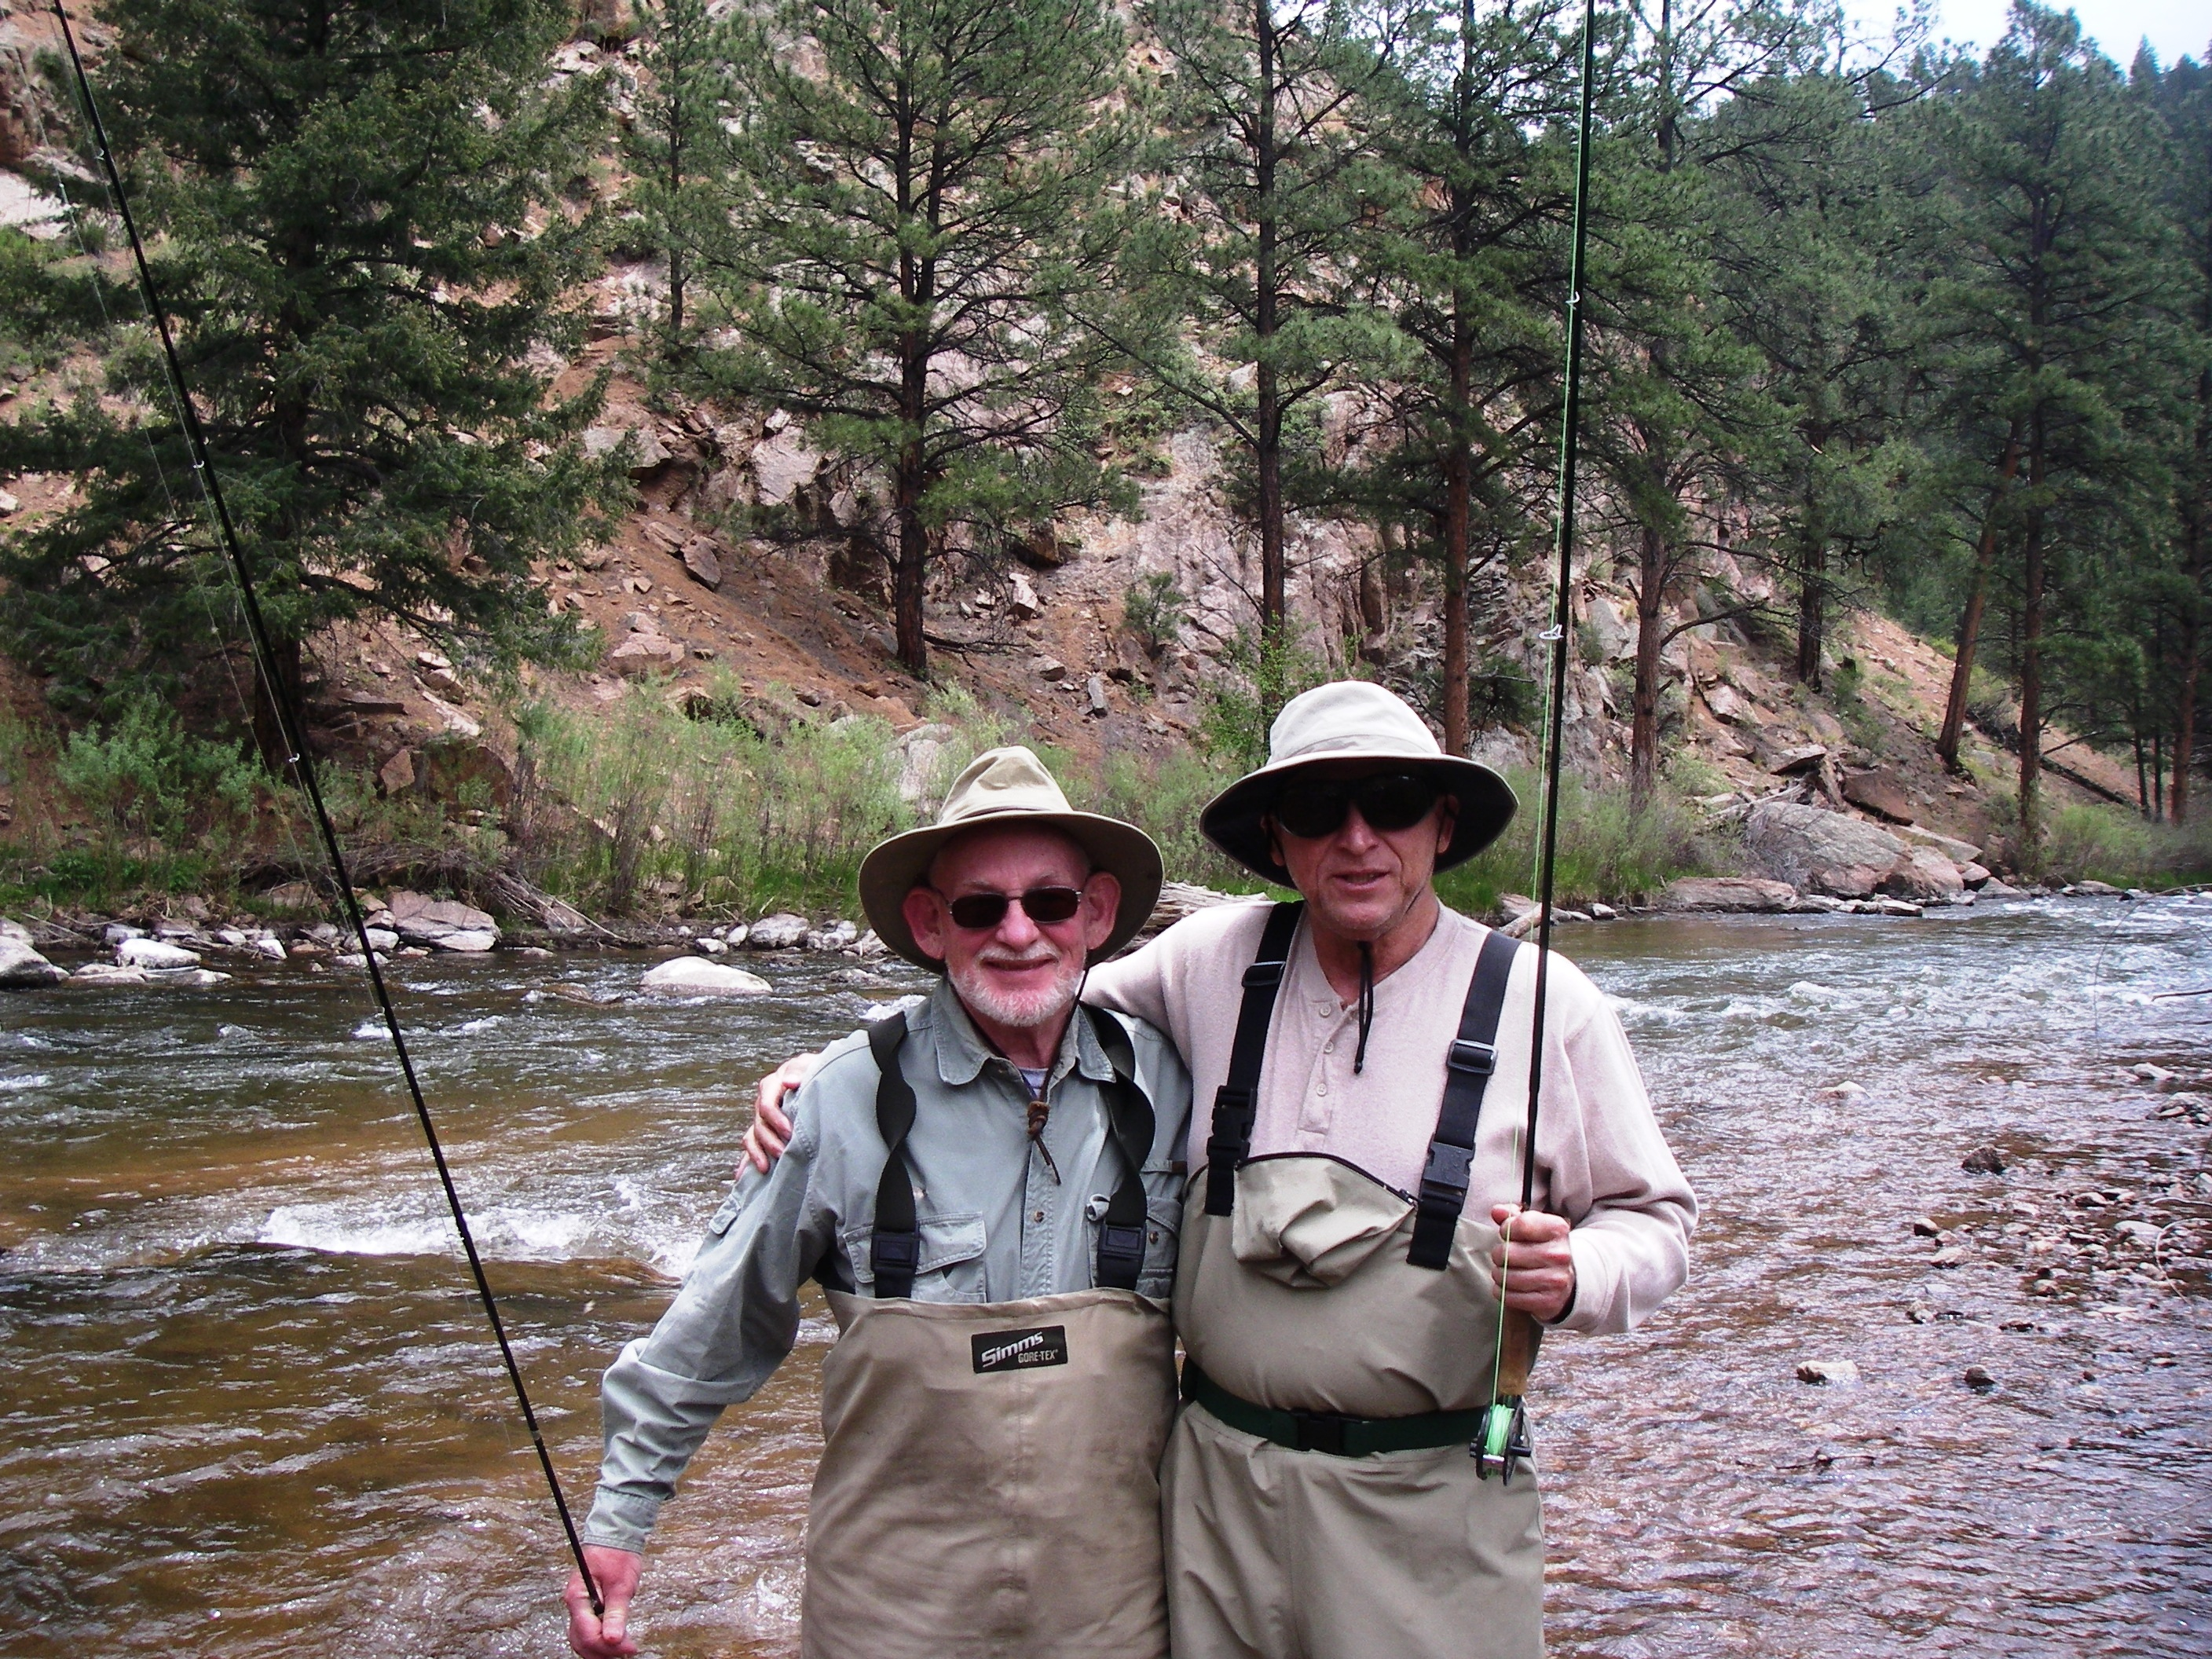 Colorado trout hunters fly fishing guides in littleton co for Colorado fishing guide